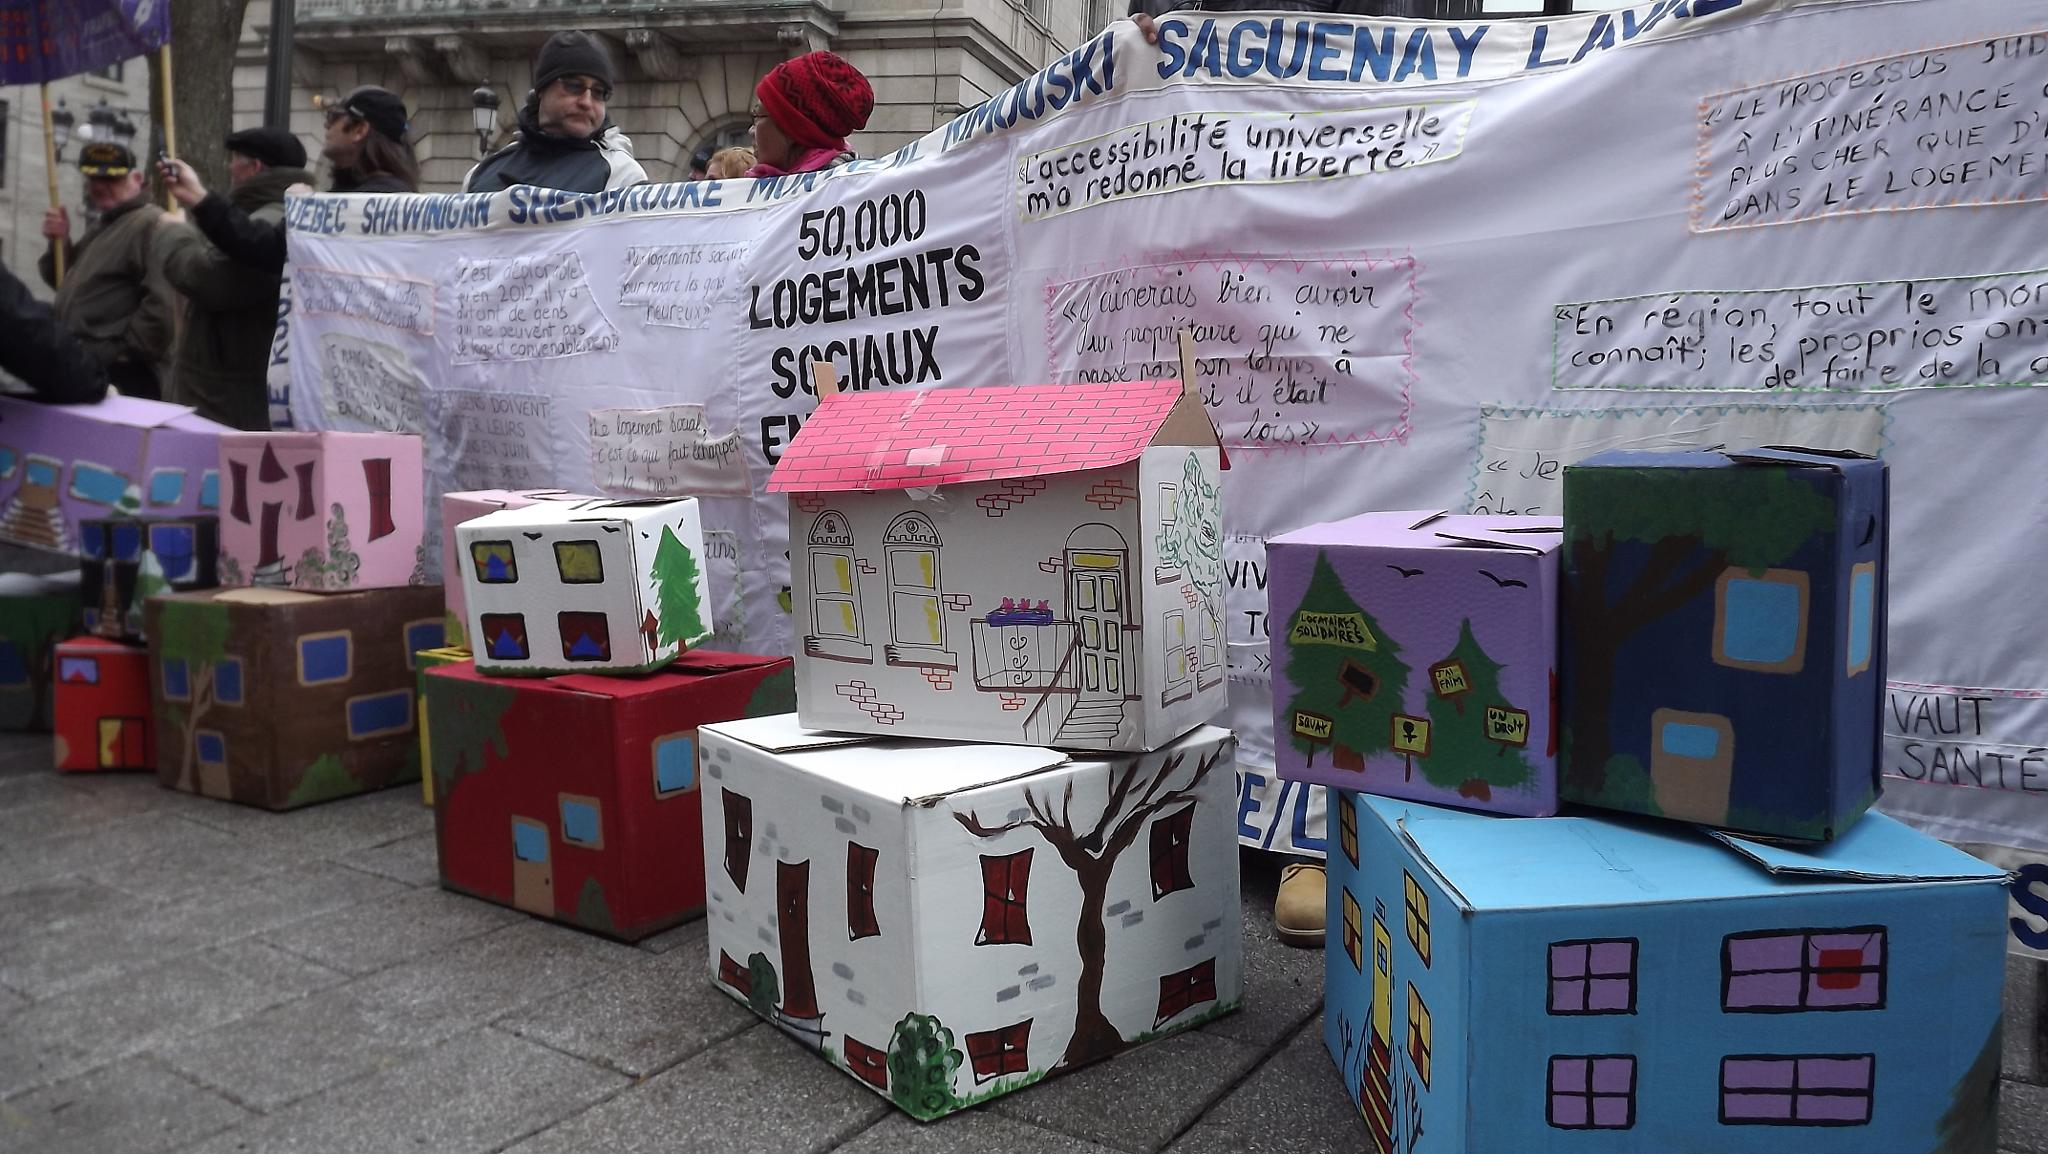 Manifestation for social housing with carton house Quebec city by real.michaud.5036